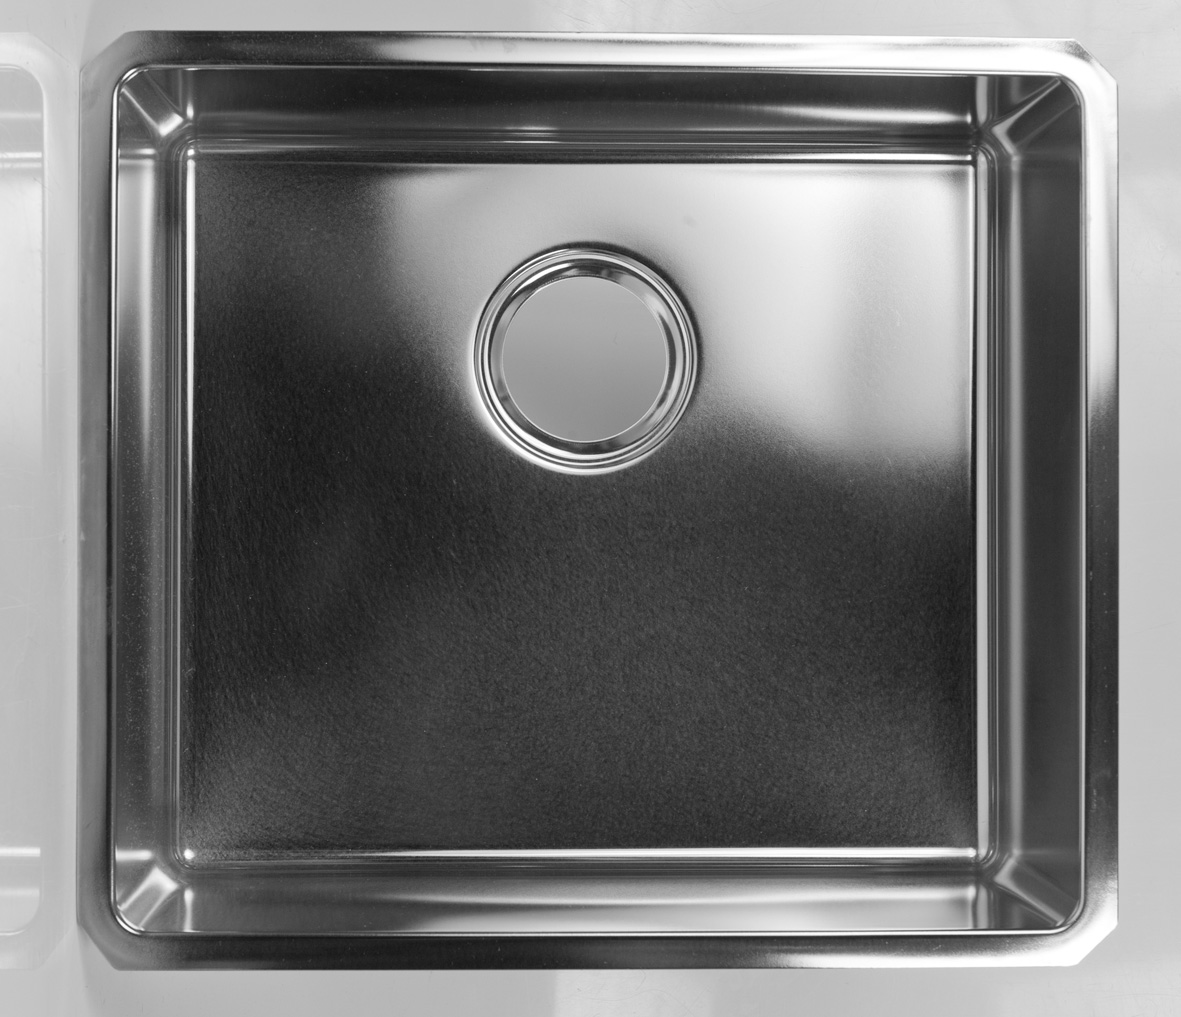 Tight corner radius sink 304 stainless steel 450 x 400 x 180